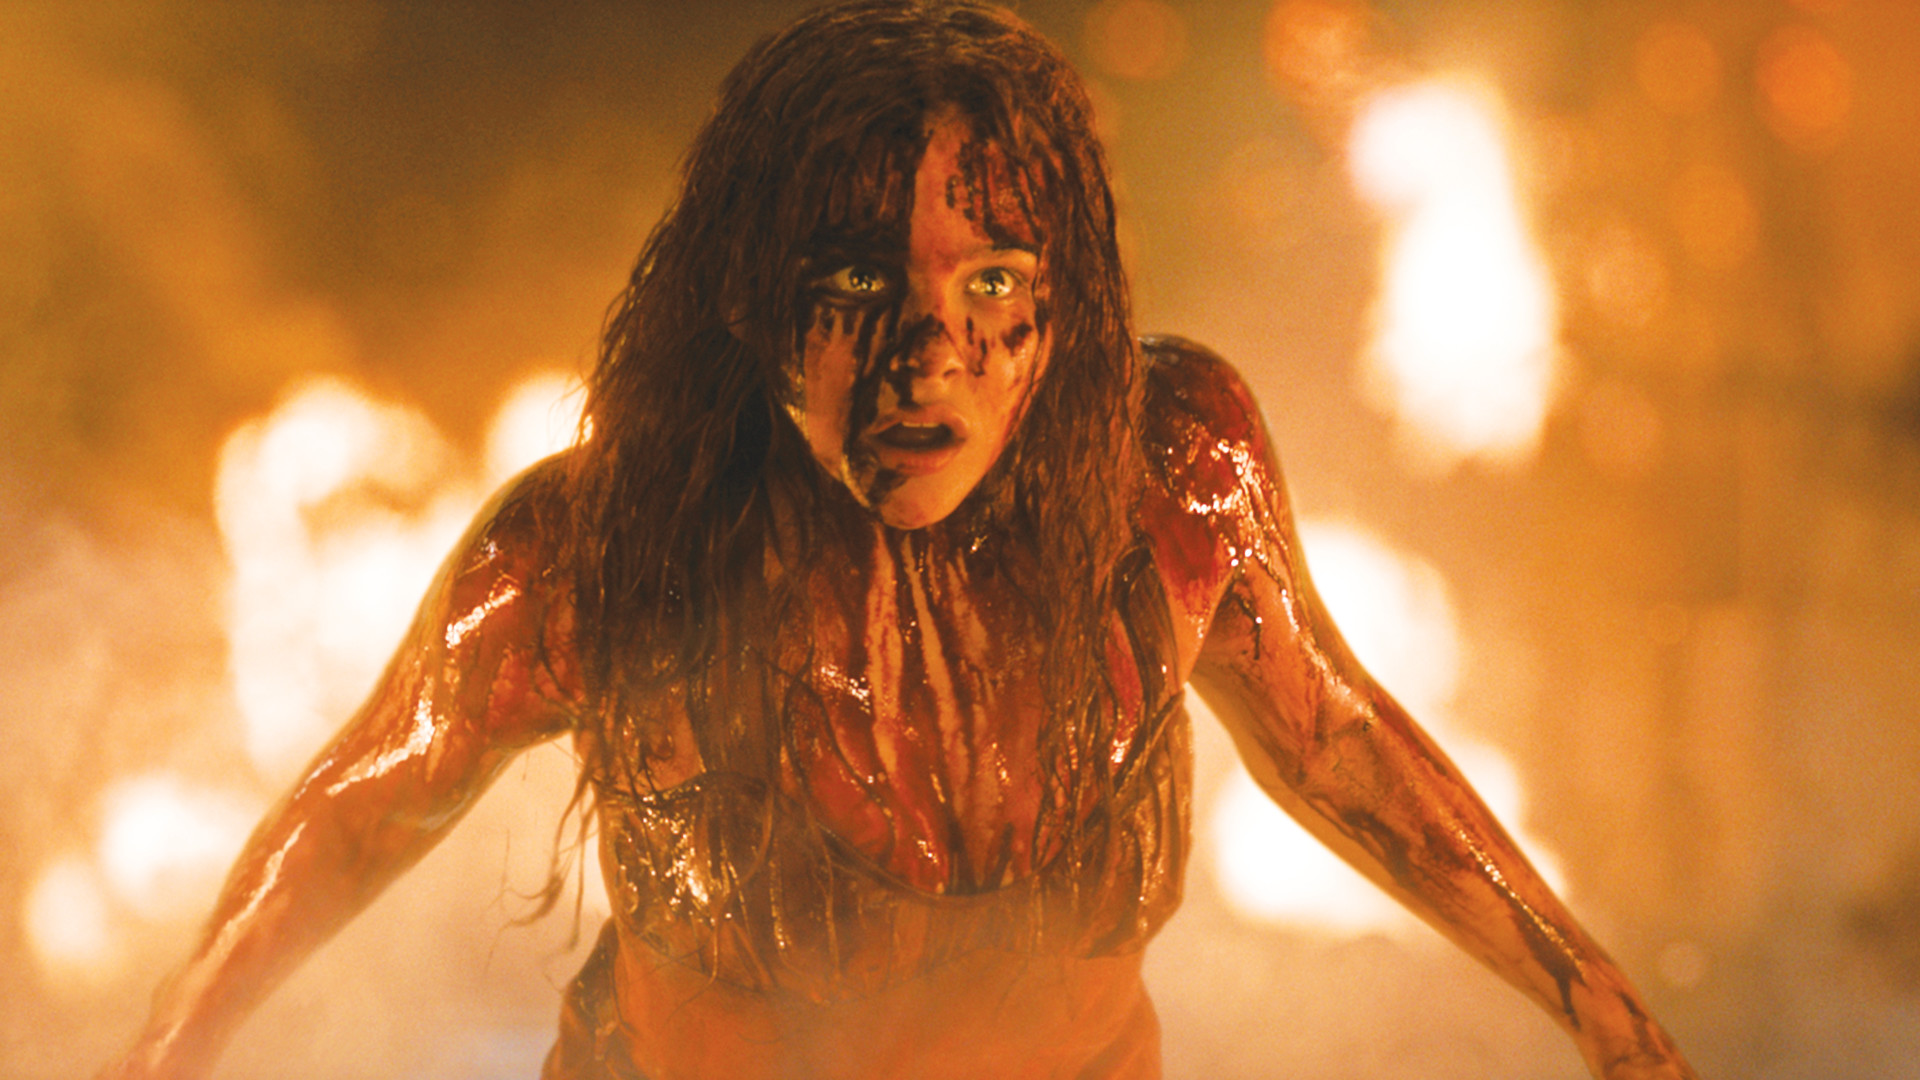 Carrie White (Chloë Grace Moretz), an outcast at her school, has returned to exact her telekinetic revenge 